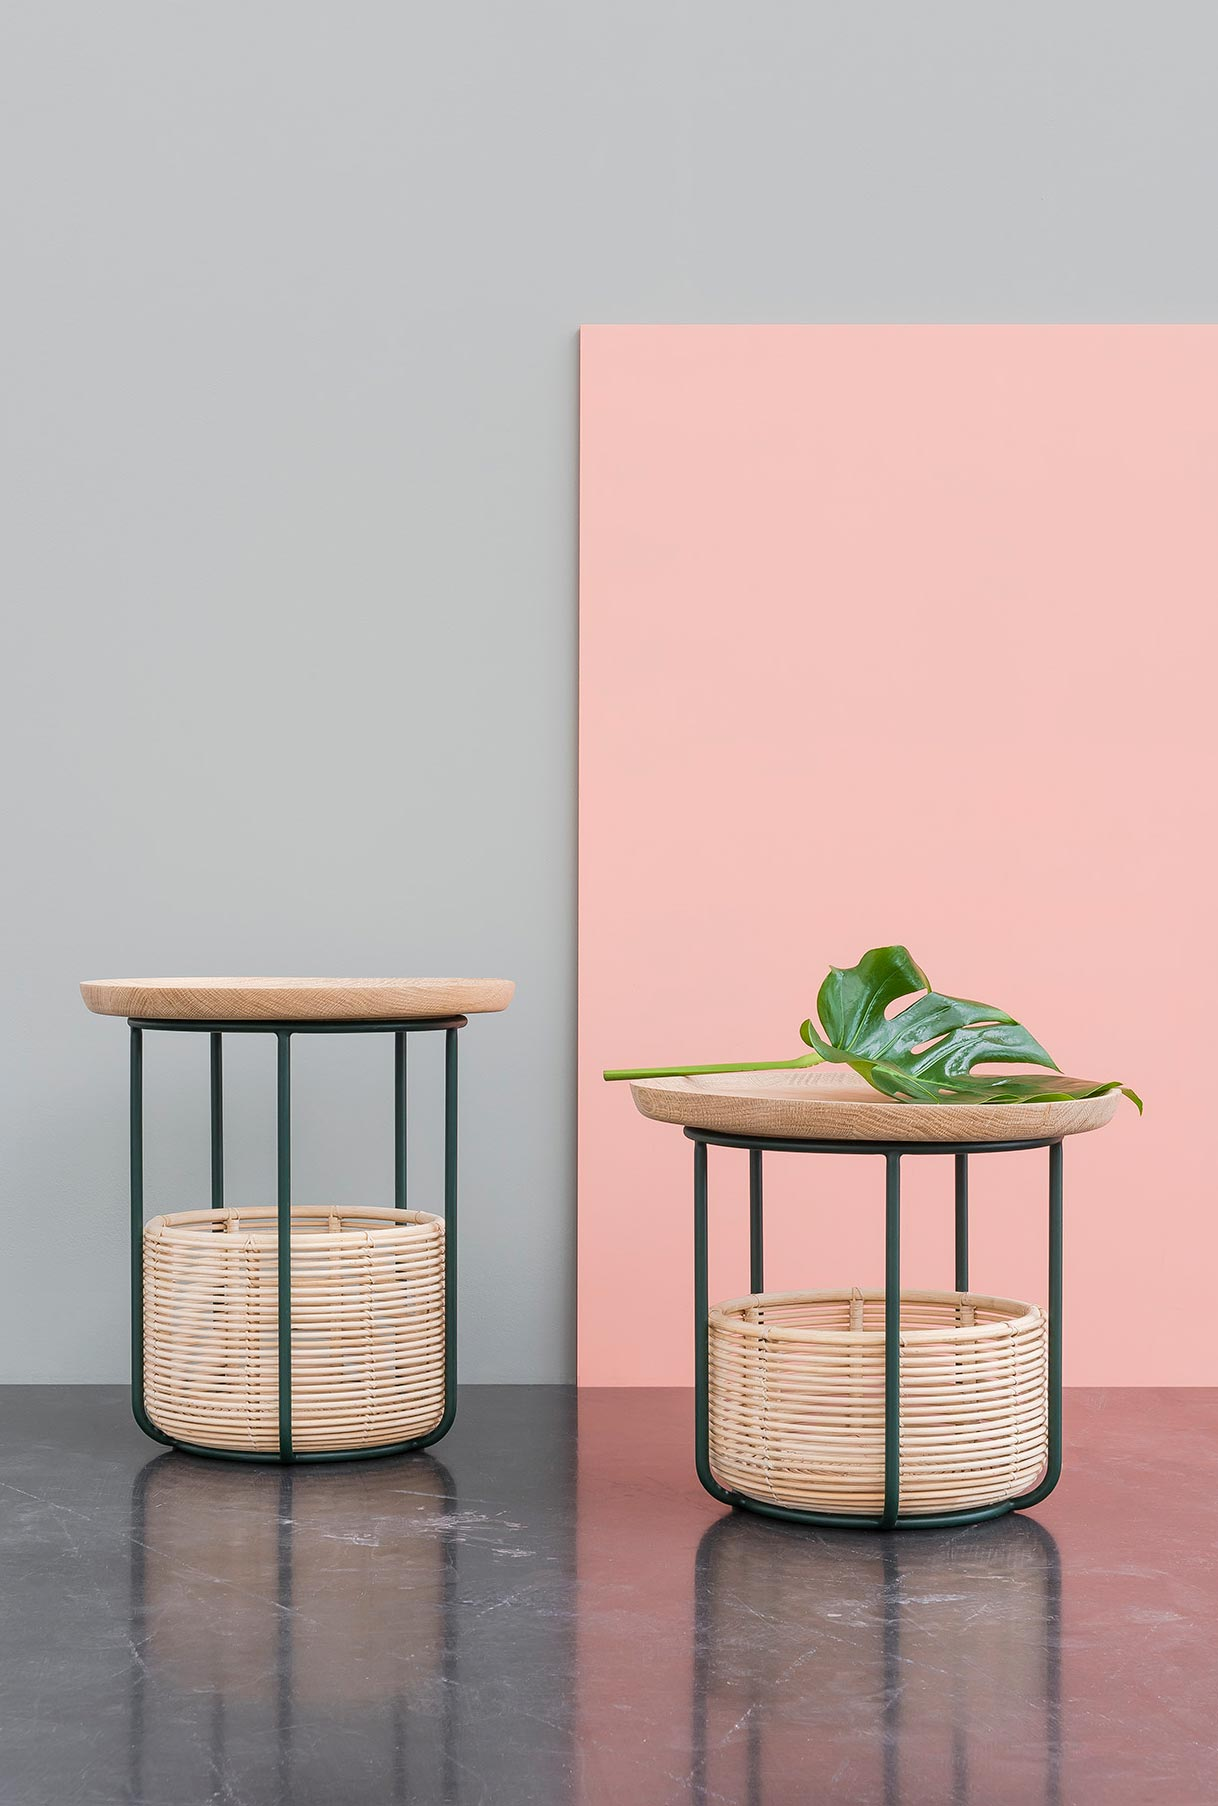 The 'Basket' side tables by Alain Gilles for Belgian label Vincent Sheppard featuresrattan baskets and a removal solid timber tray style top.